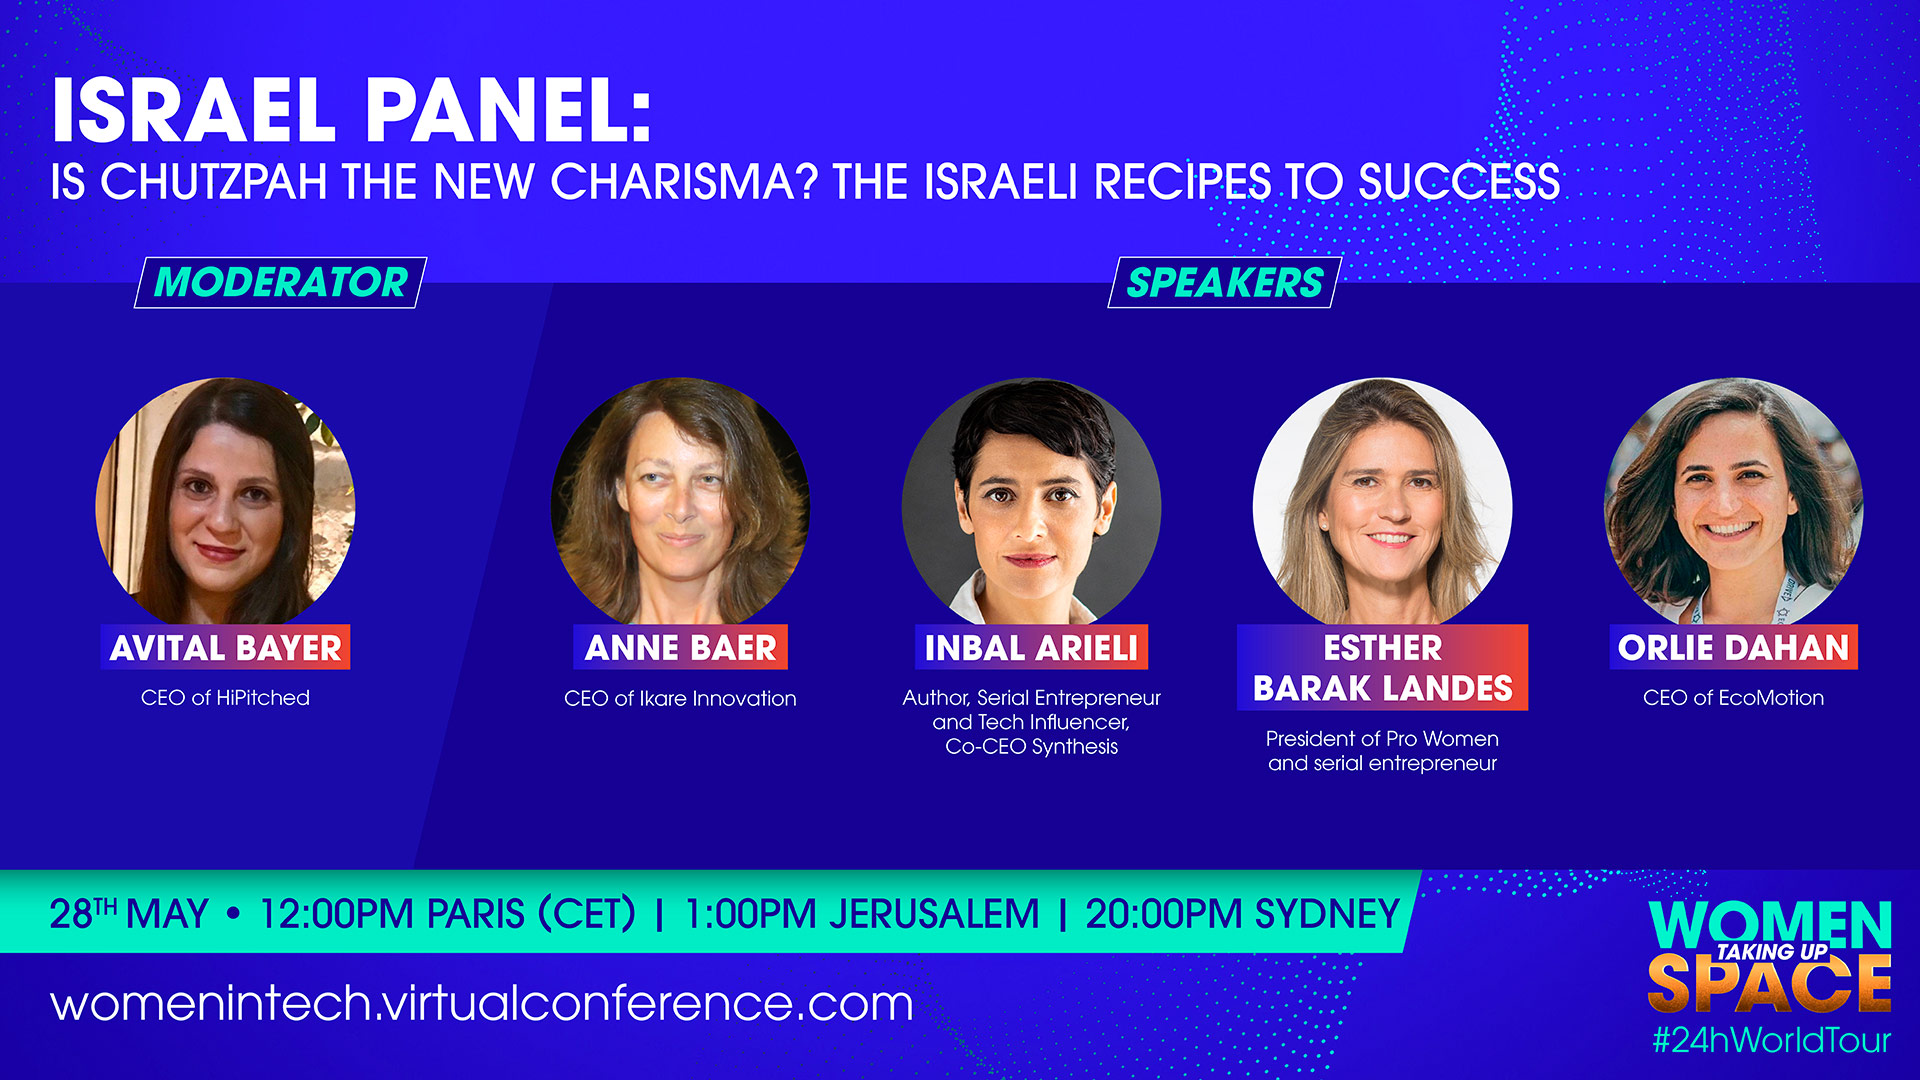 Women in Tech Israel Kickoff – Is Chutzpah The New Charisma The Israeli Recipes To Success